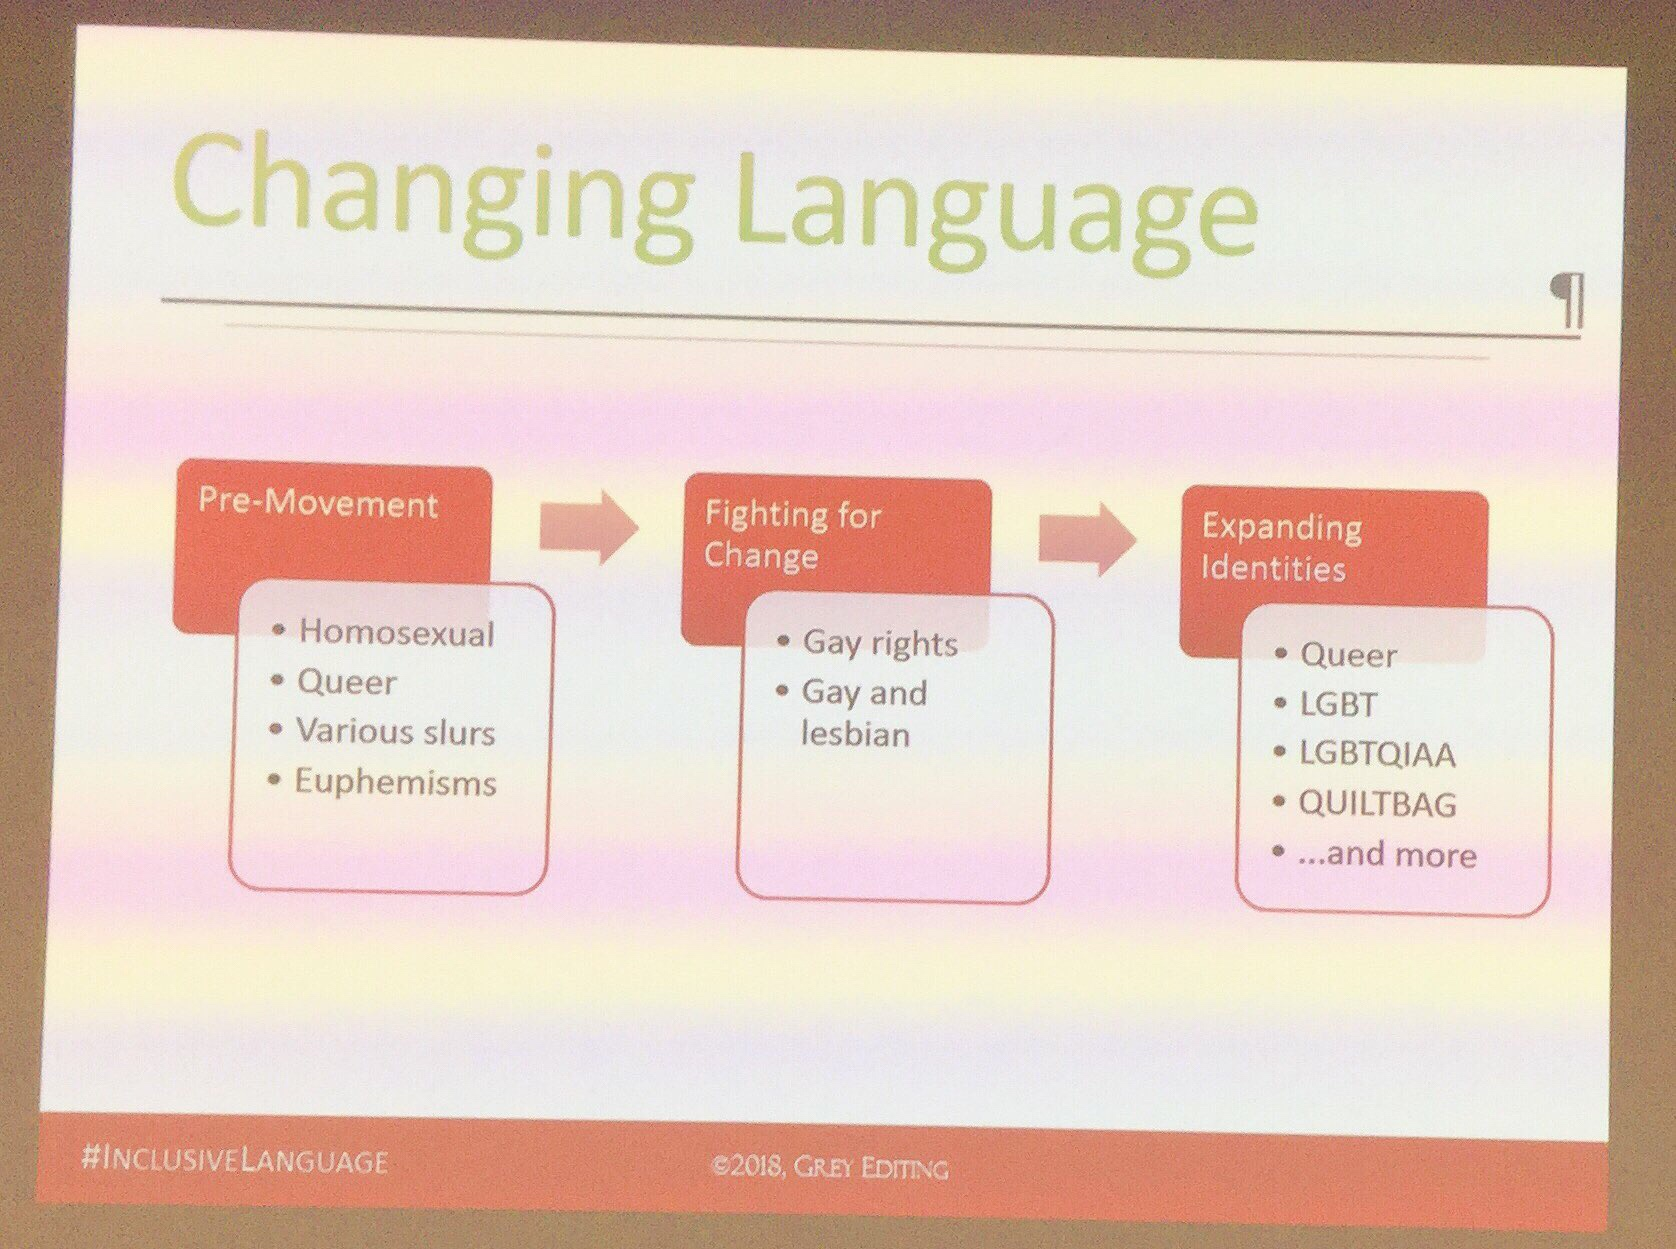 Powerpoint slide: changing language (pre-movement, through fighting for change, to expanding identities)